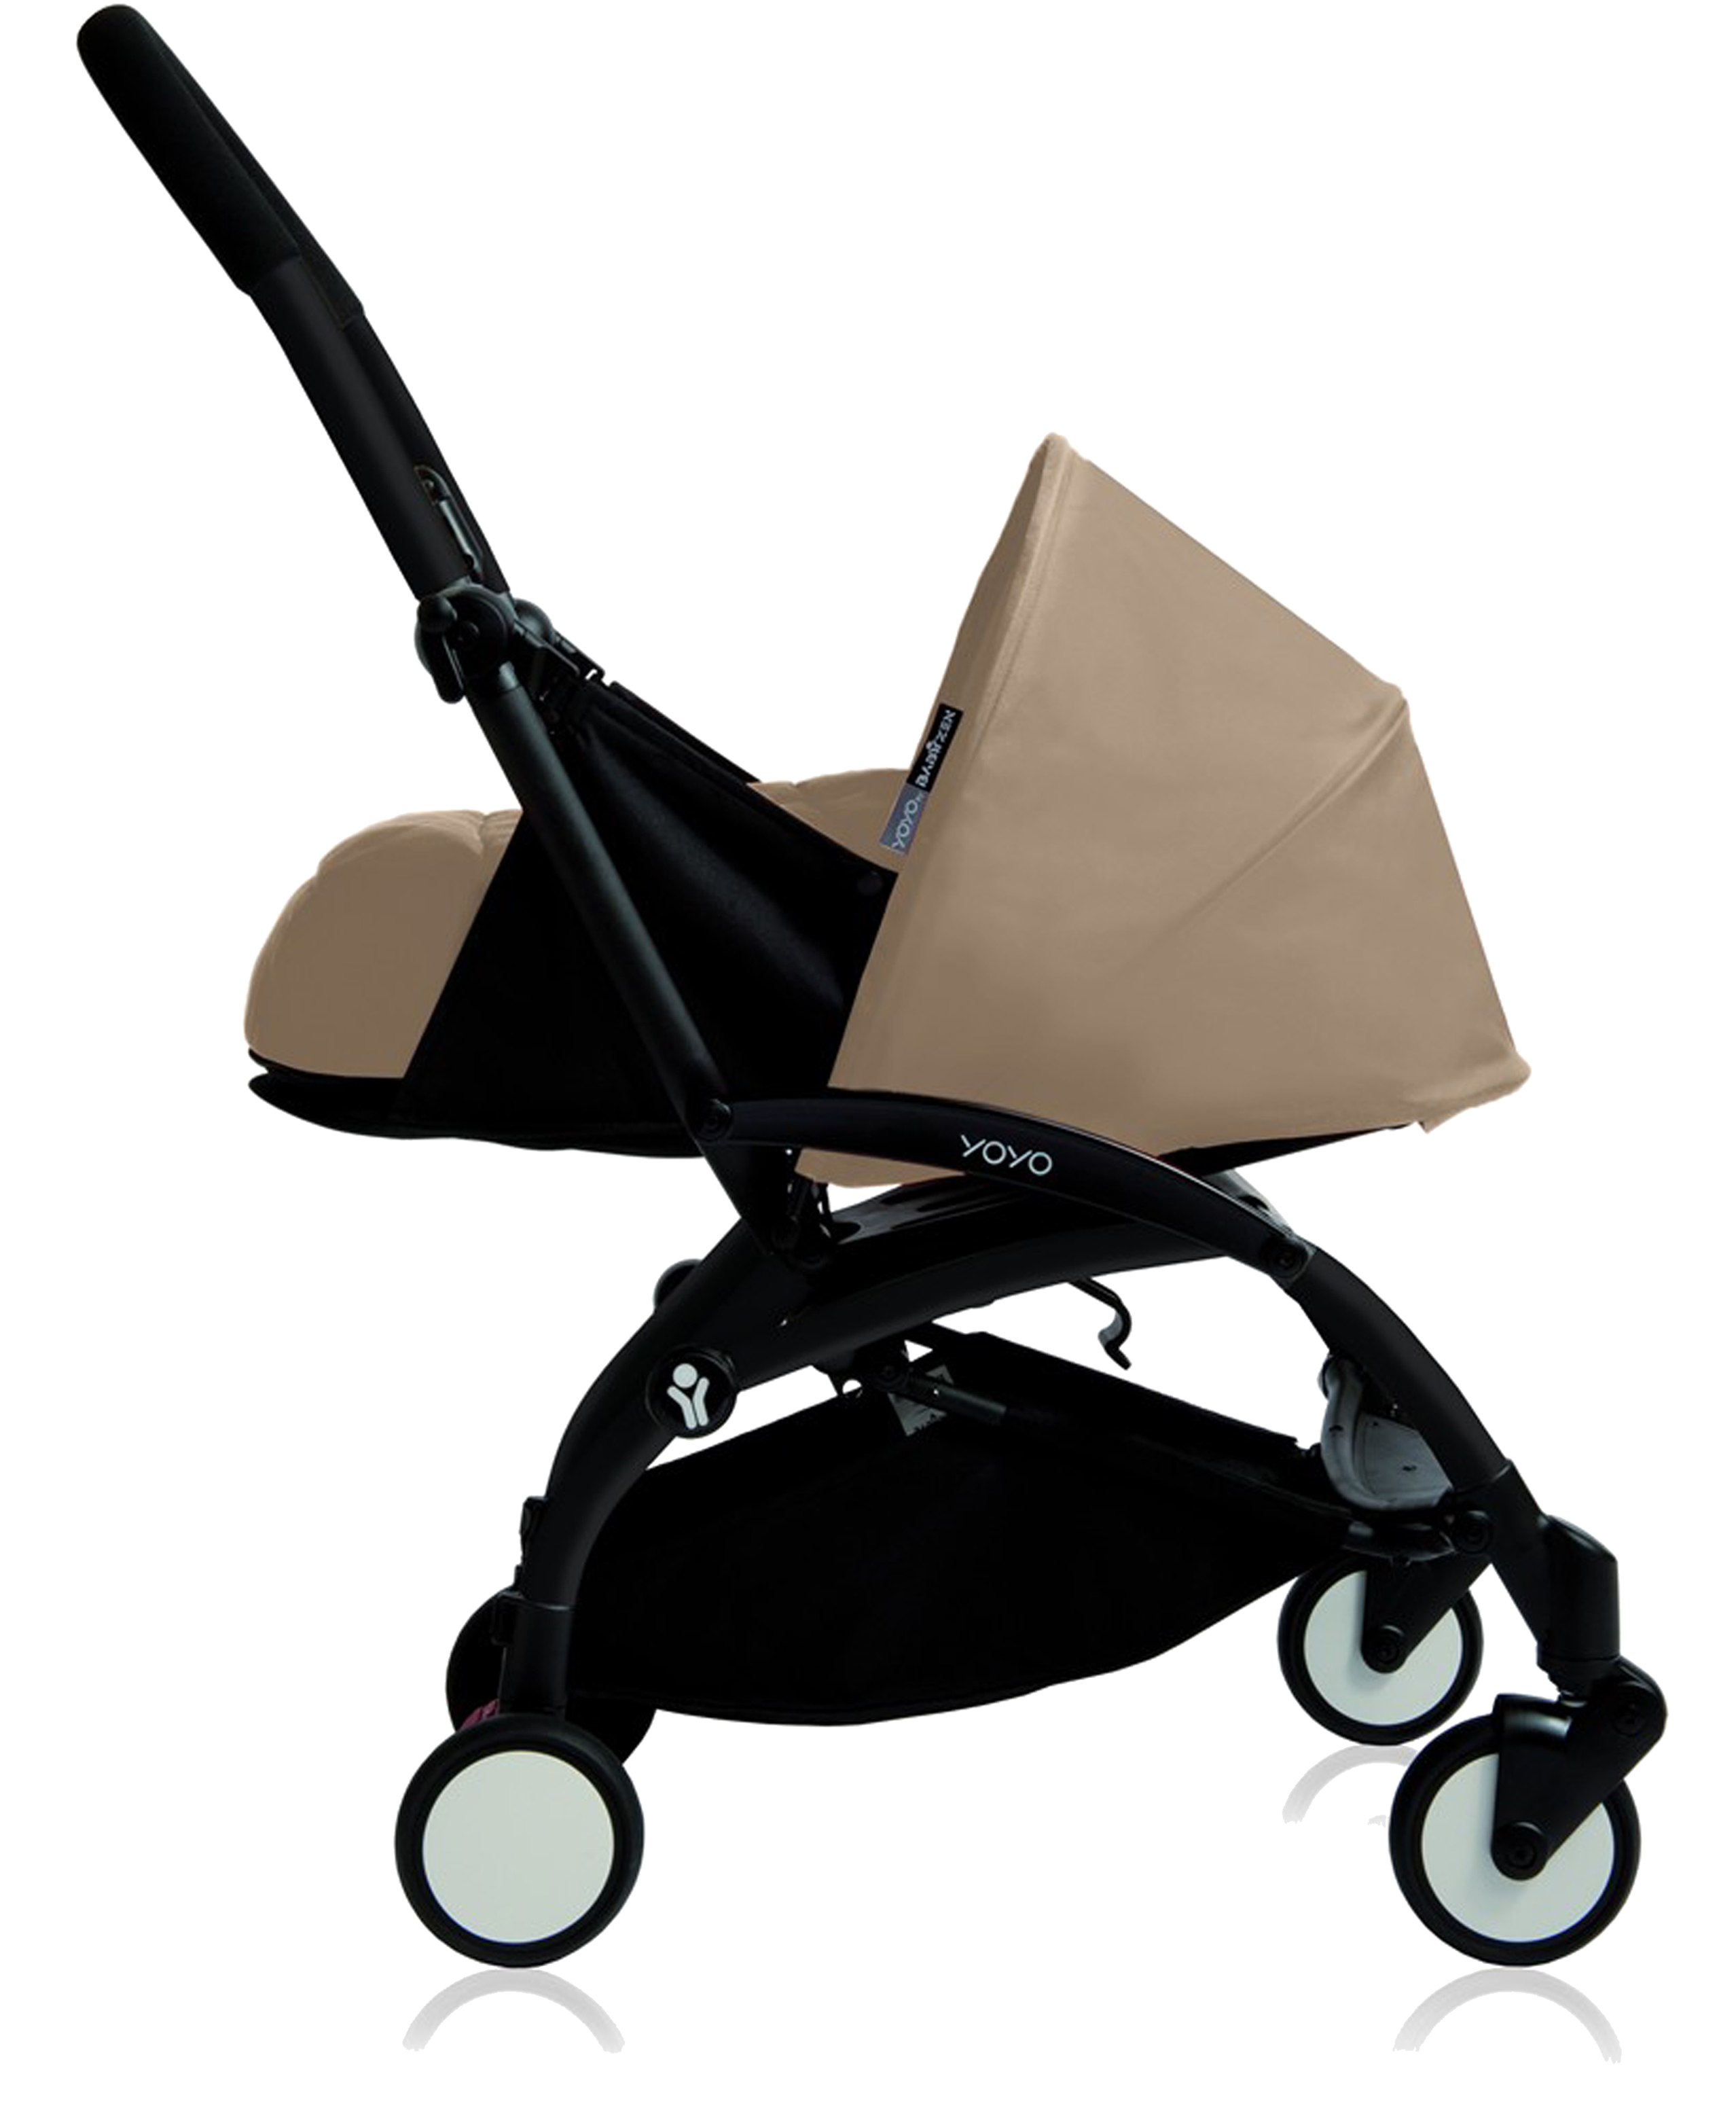 Everyday Strollers And Accessories Babyzen Yoyo